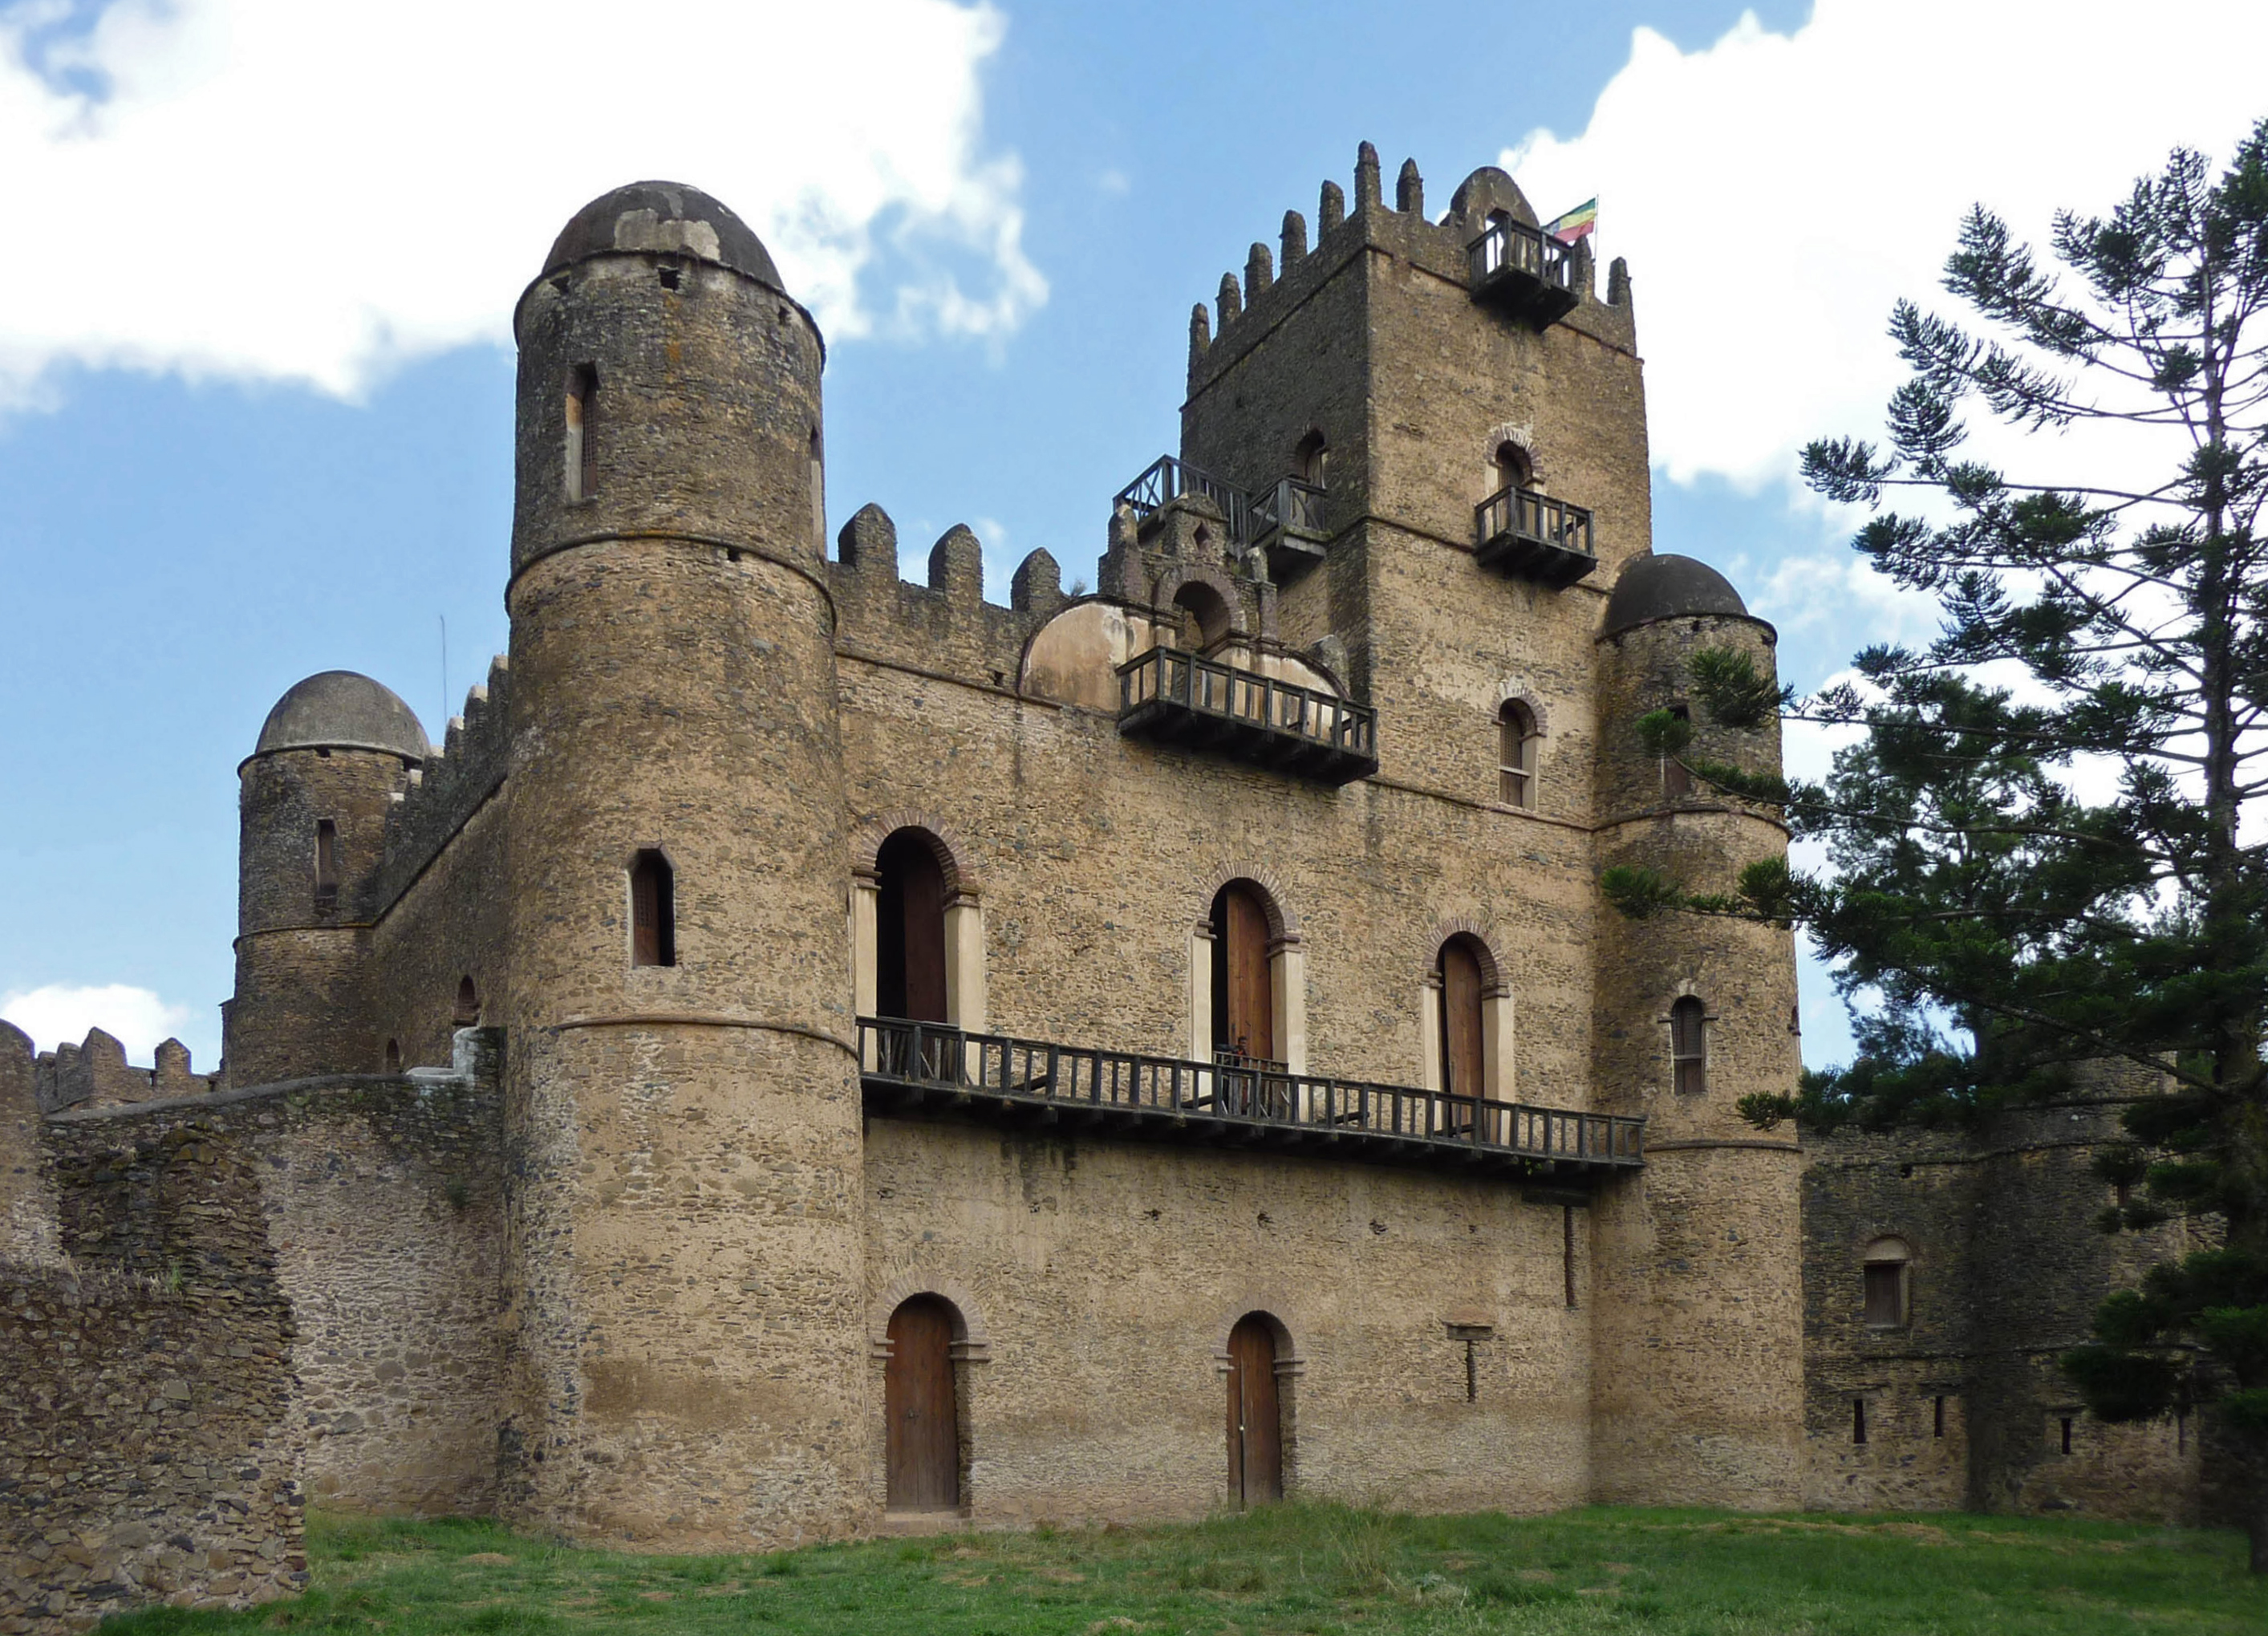 image gallery of famous african architecture